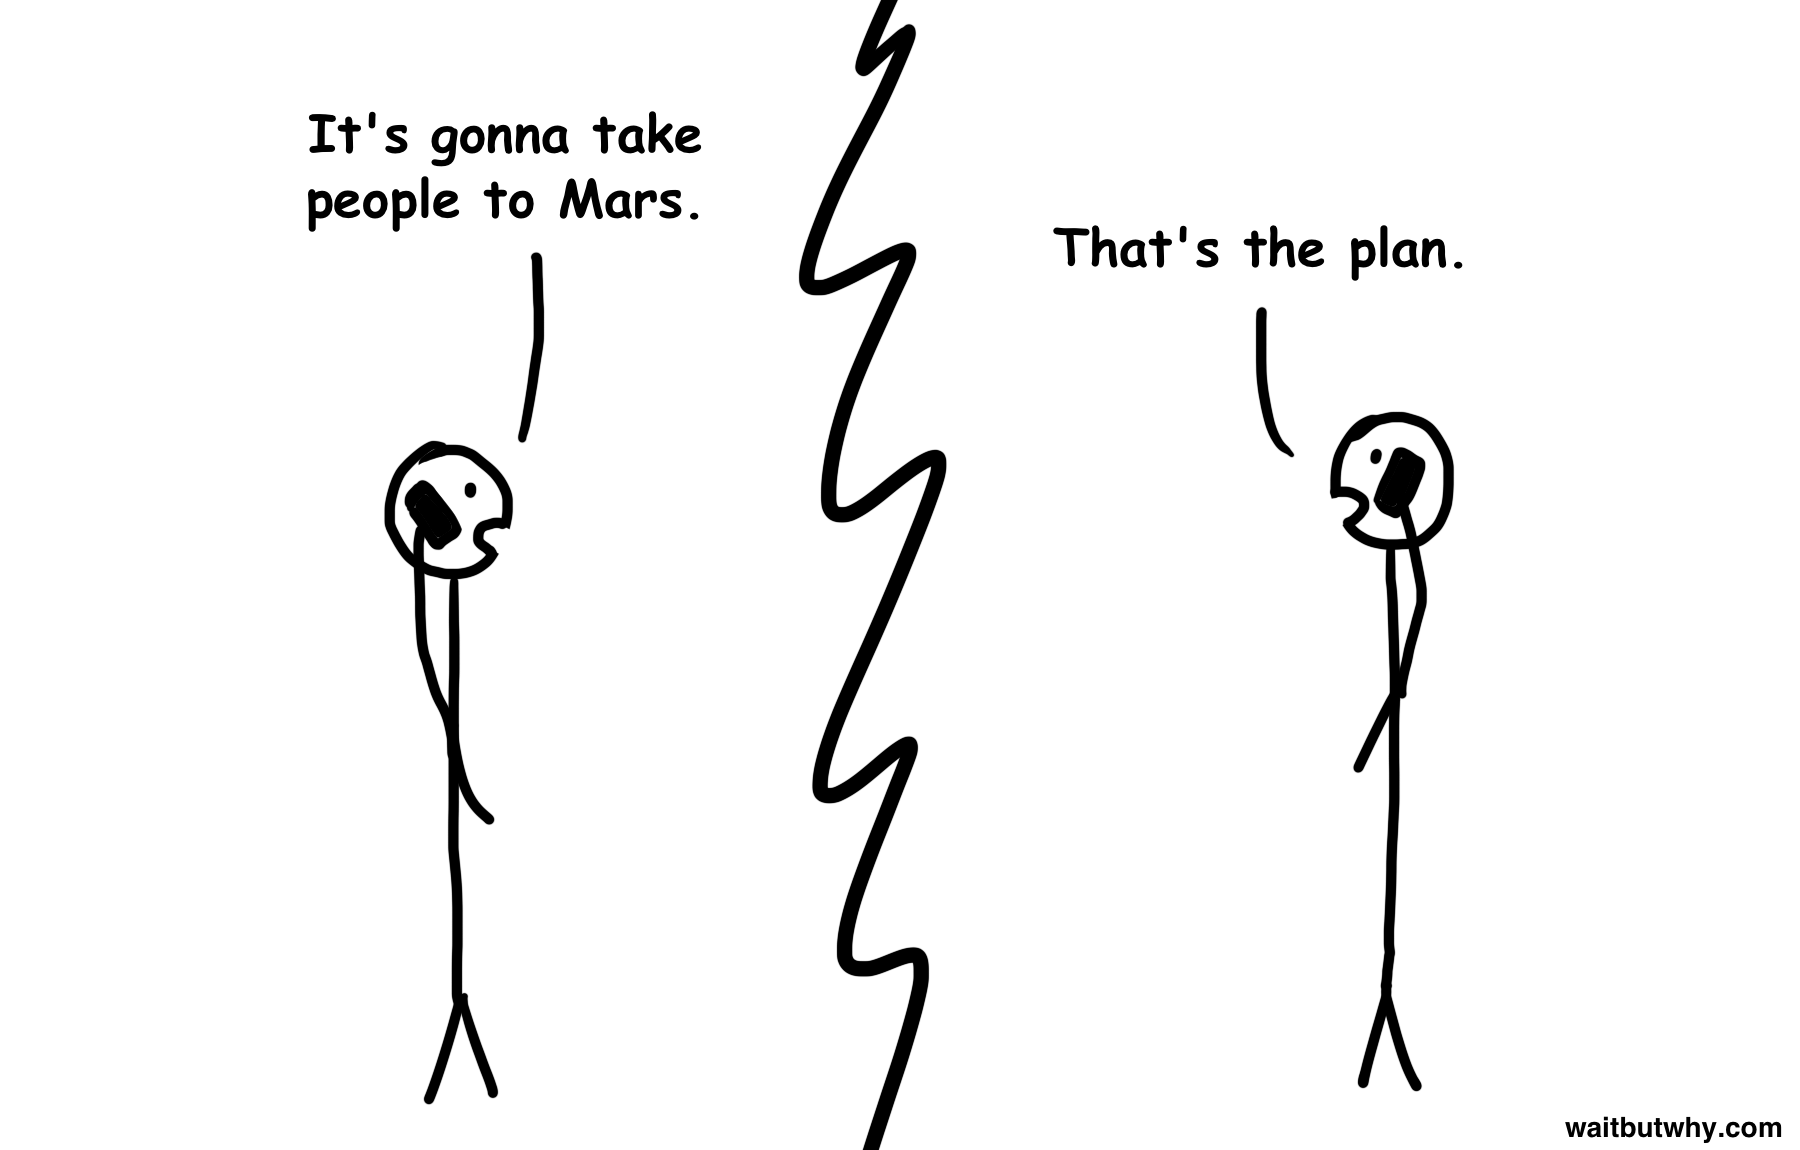 The full story behind SpaceX's big rocket, and future trips to Mars.